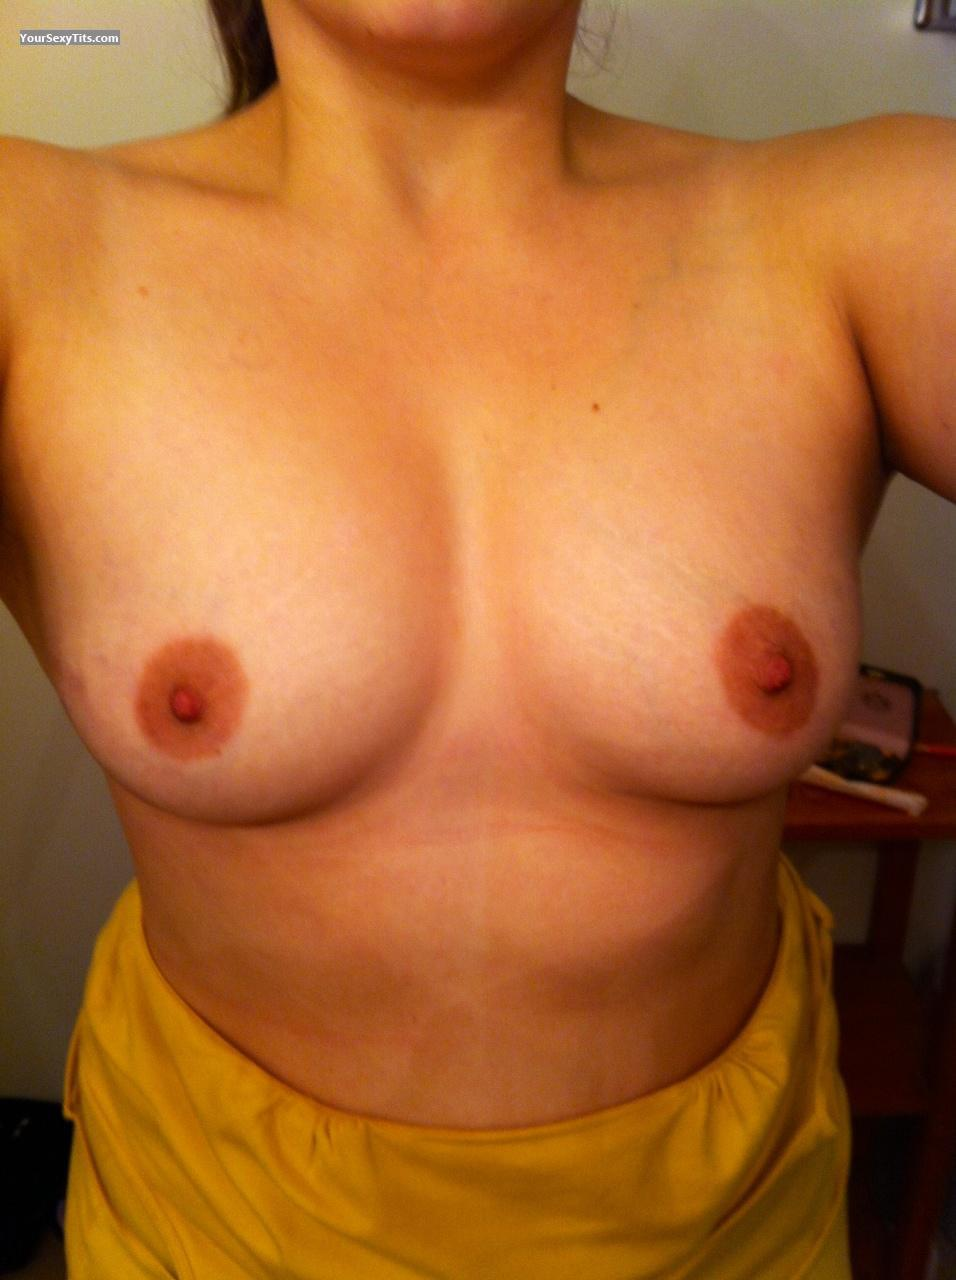 Tit Flash: My Medium Tits By IPhone (Selfie) - Amber from United States